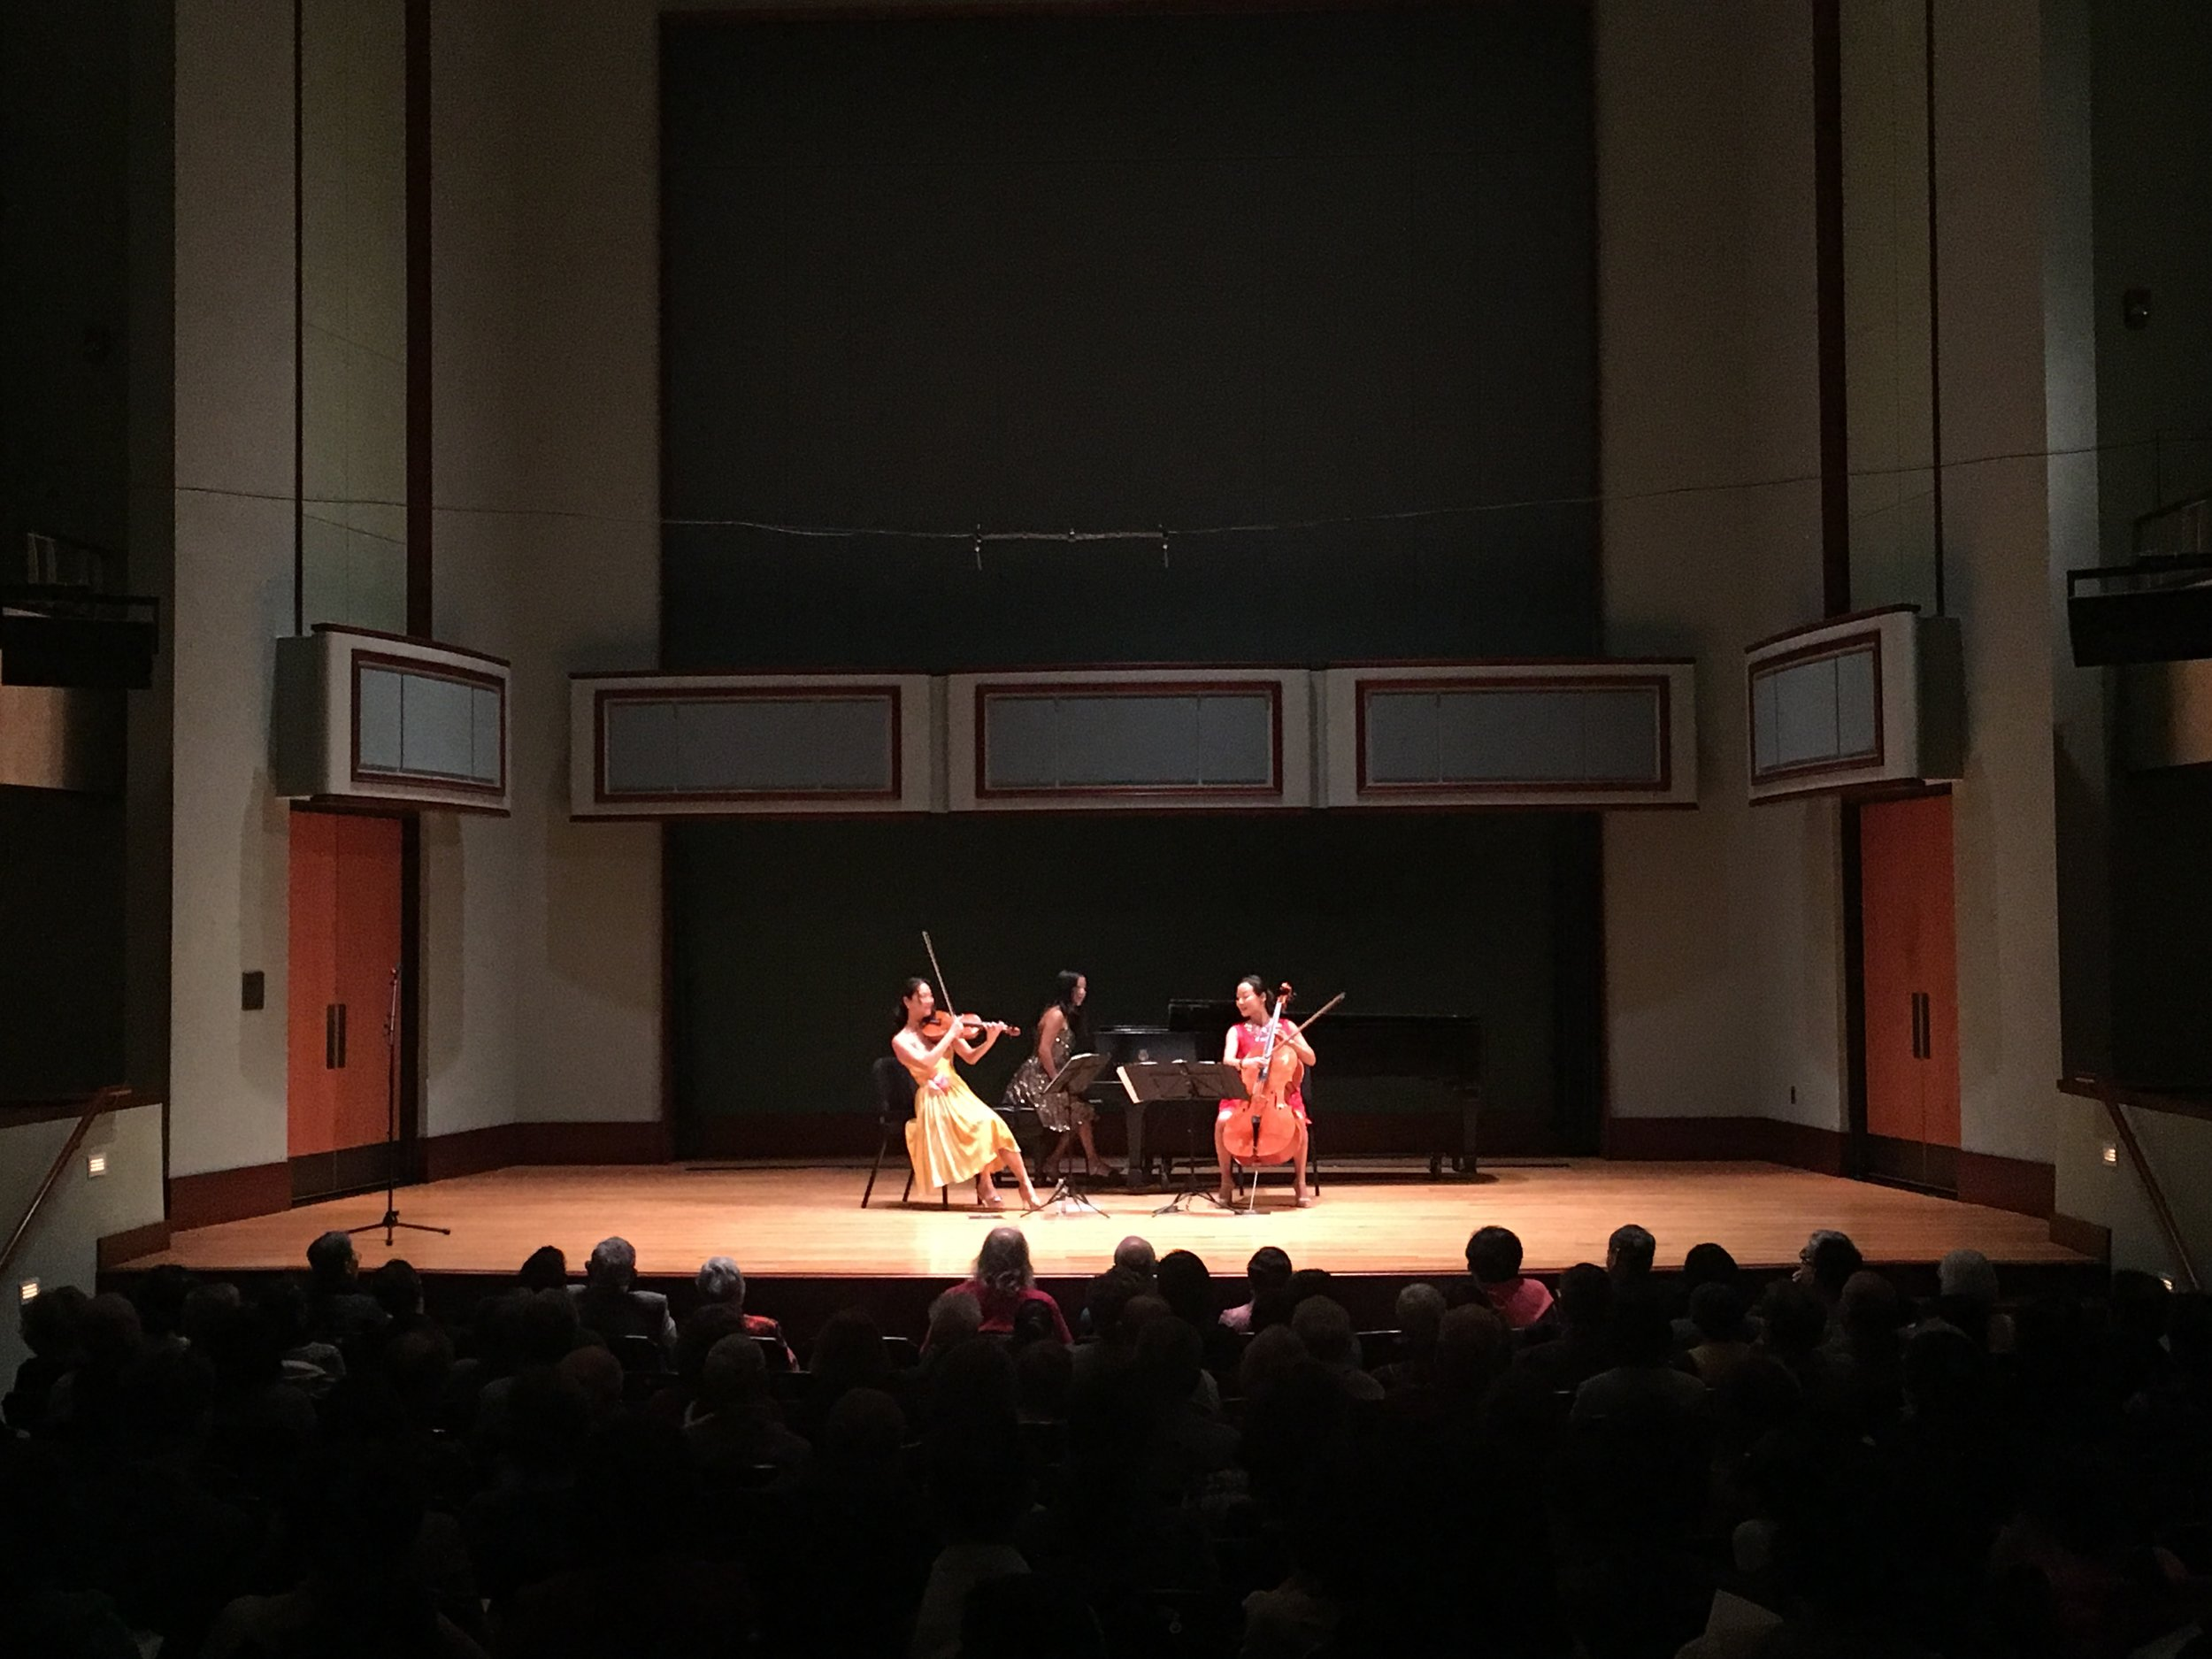 Ahn Trio had so much fun playing for you University of Delaware! Thank you Korean American Association of Delaware, too and the students who played for us! See you again soon!